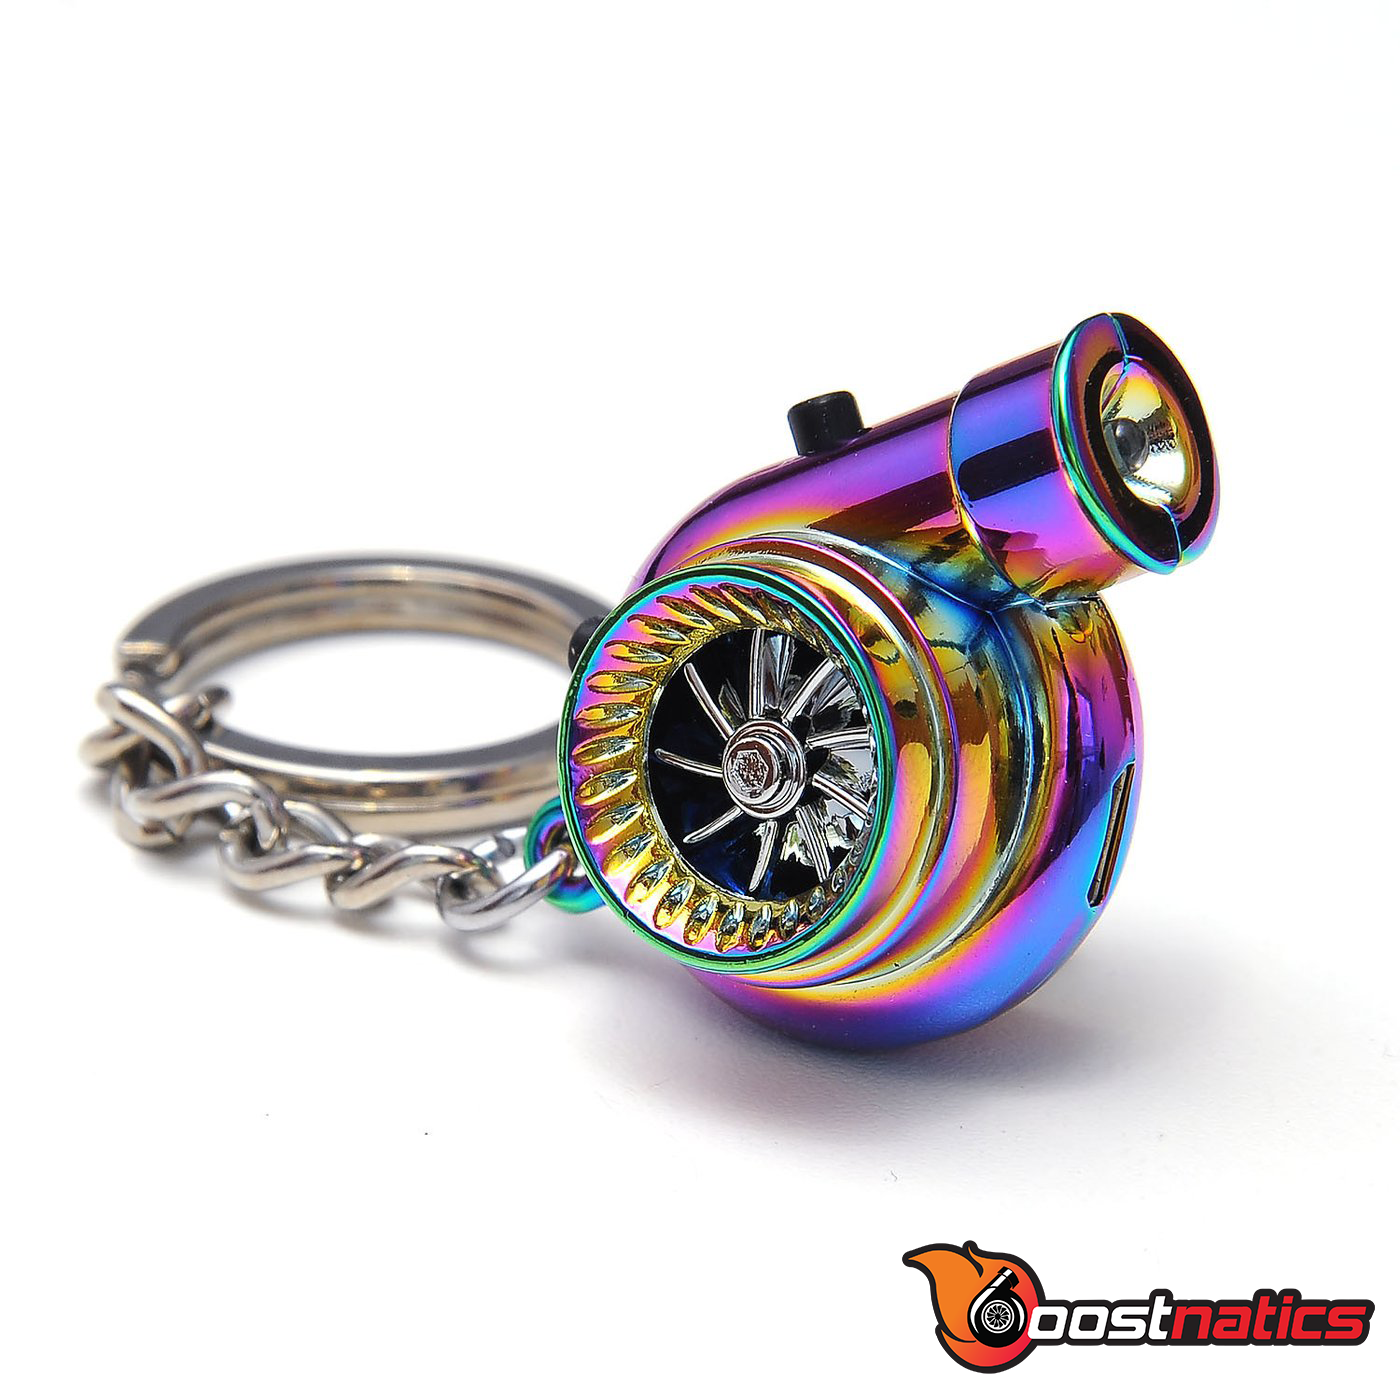 Boostnatics Rechargeable Electric Turbo Keychain Keyring w/ Sounds & LED - Neo